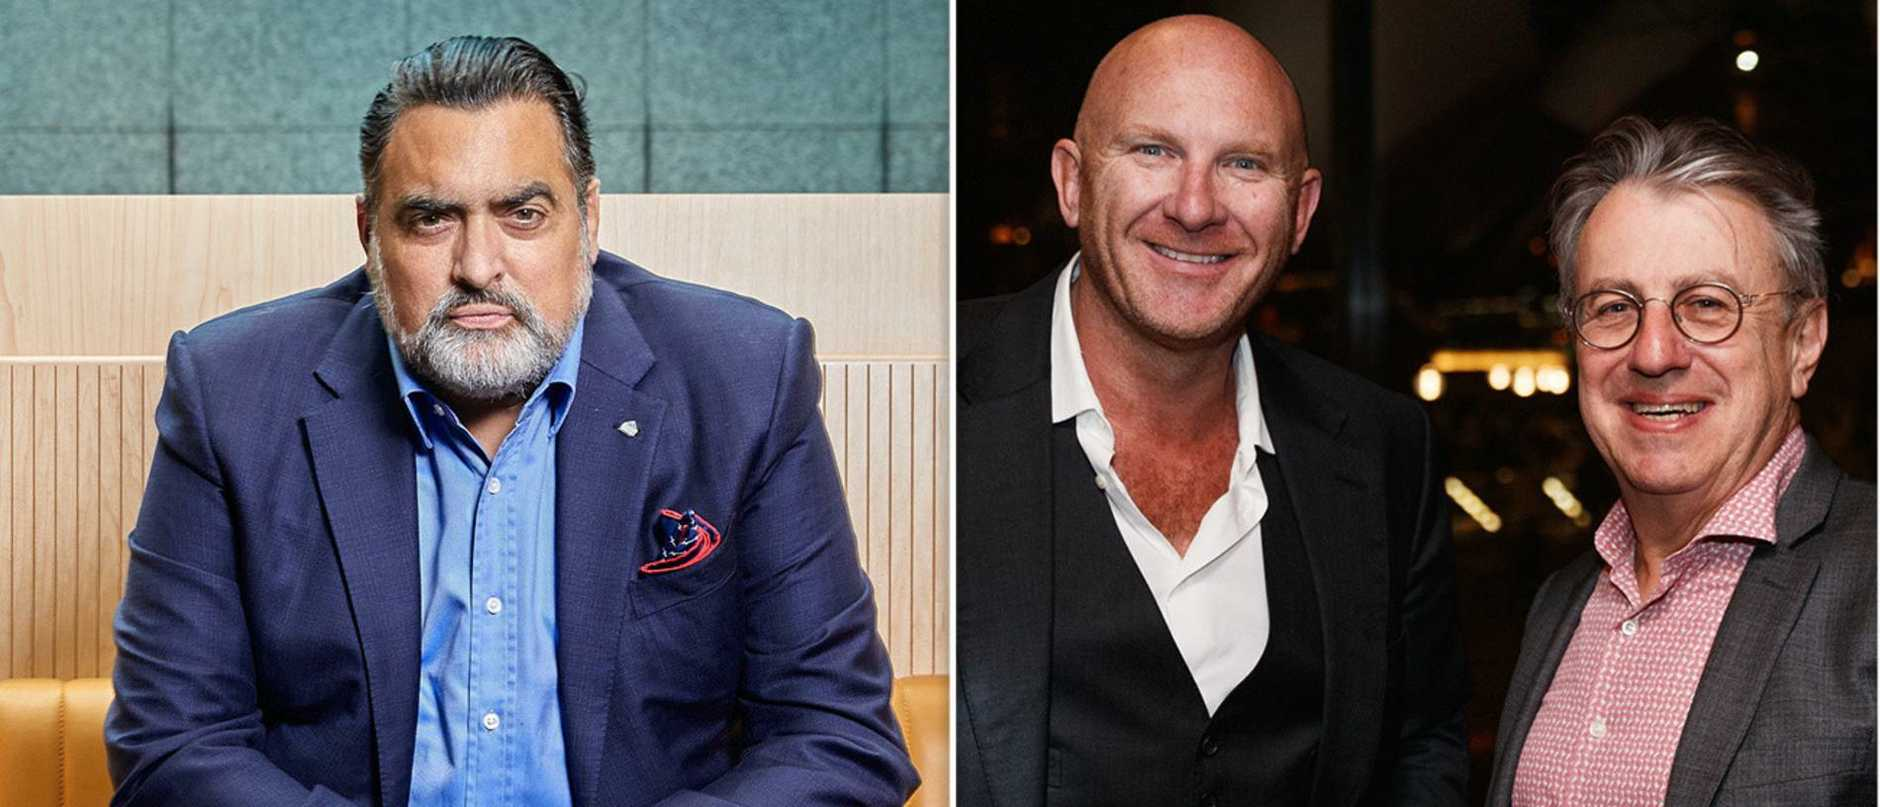 Landlord James Symond is battling pub mogul Bruce Solomon and celebrity chef Matt Moran for what he claims is unpaid rent from the failed Chophouse Parramatta.